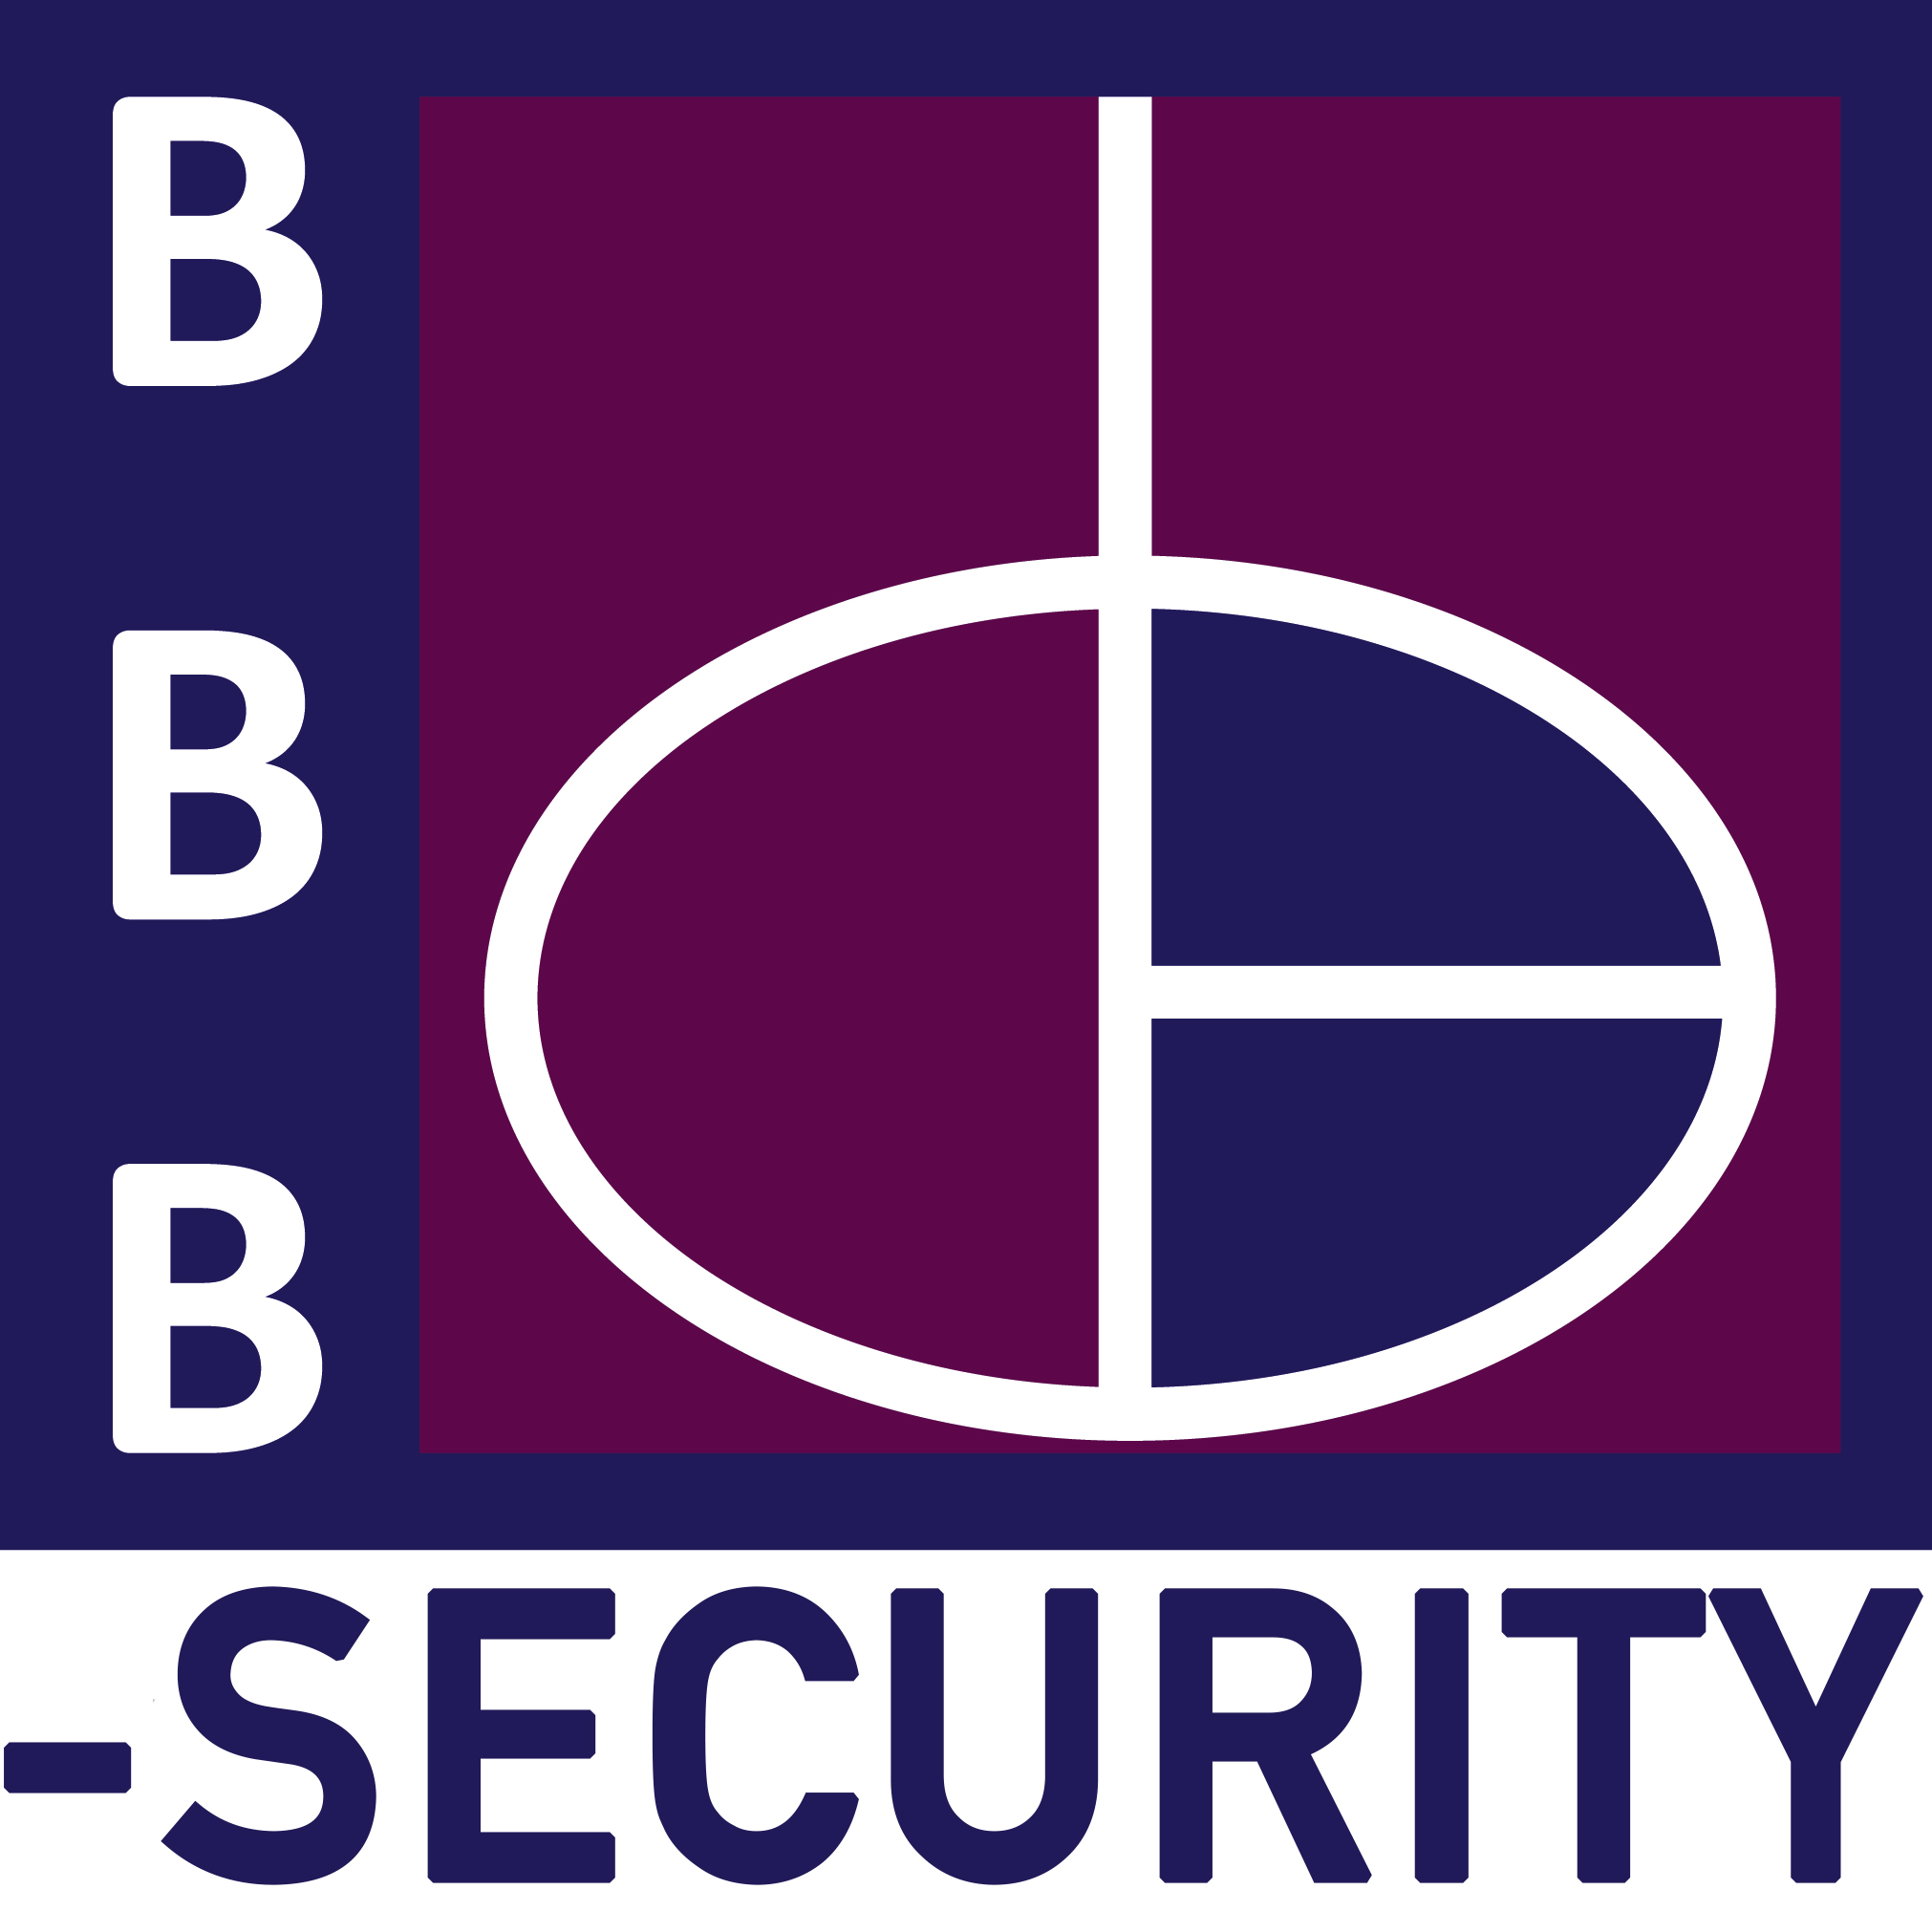 BBB-Security